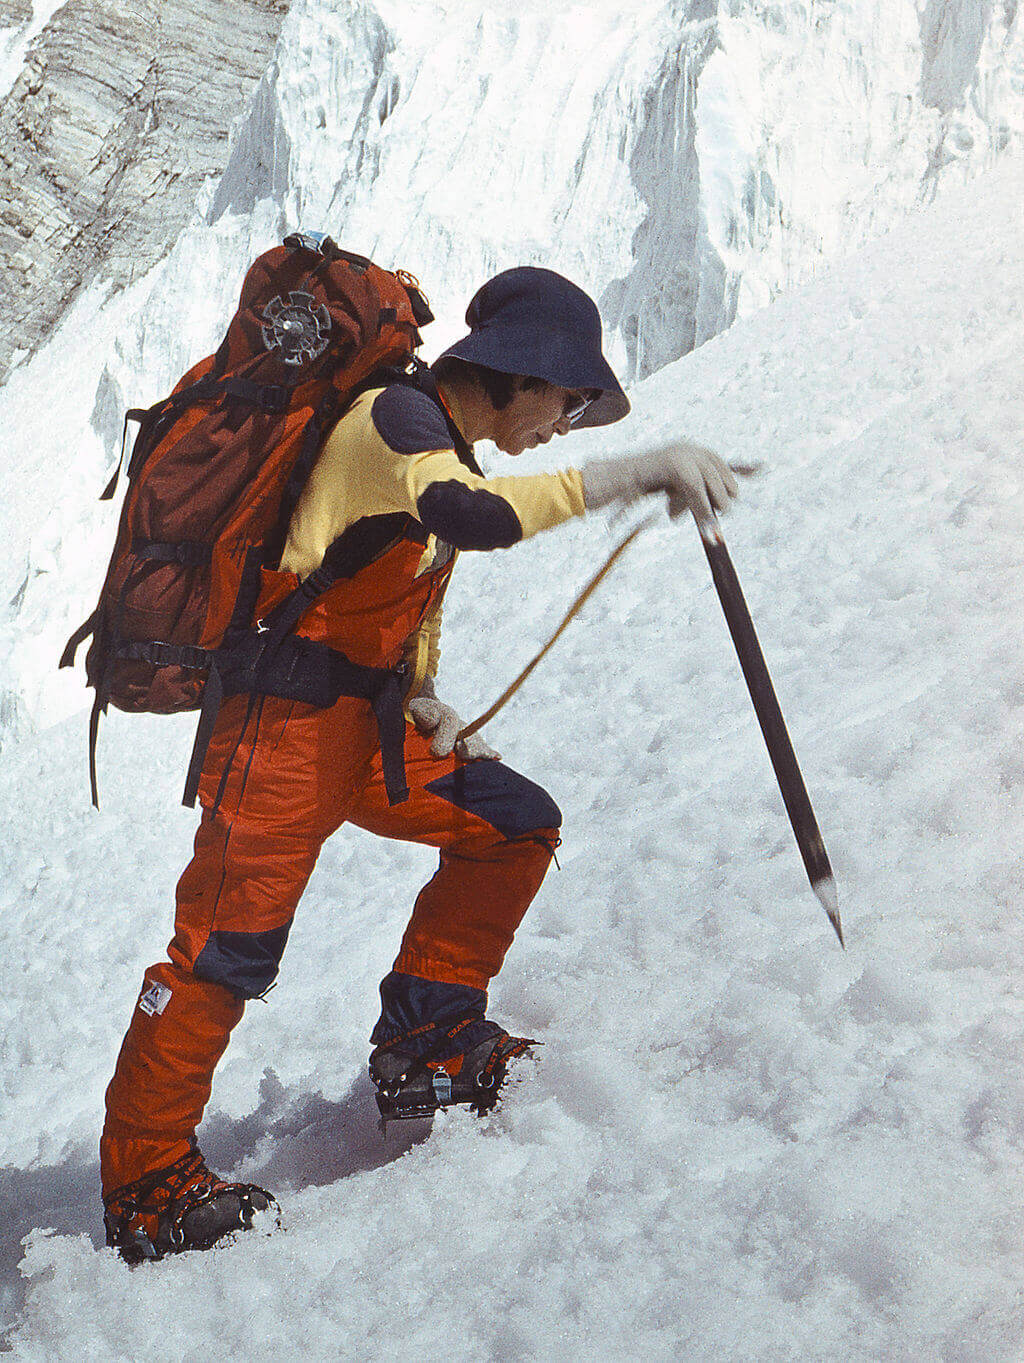 Junko Tabei female mountaineer in the snow